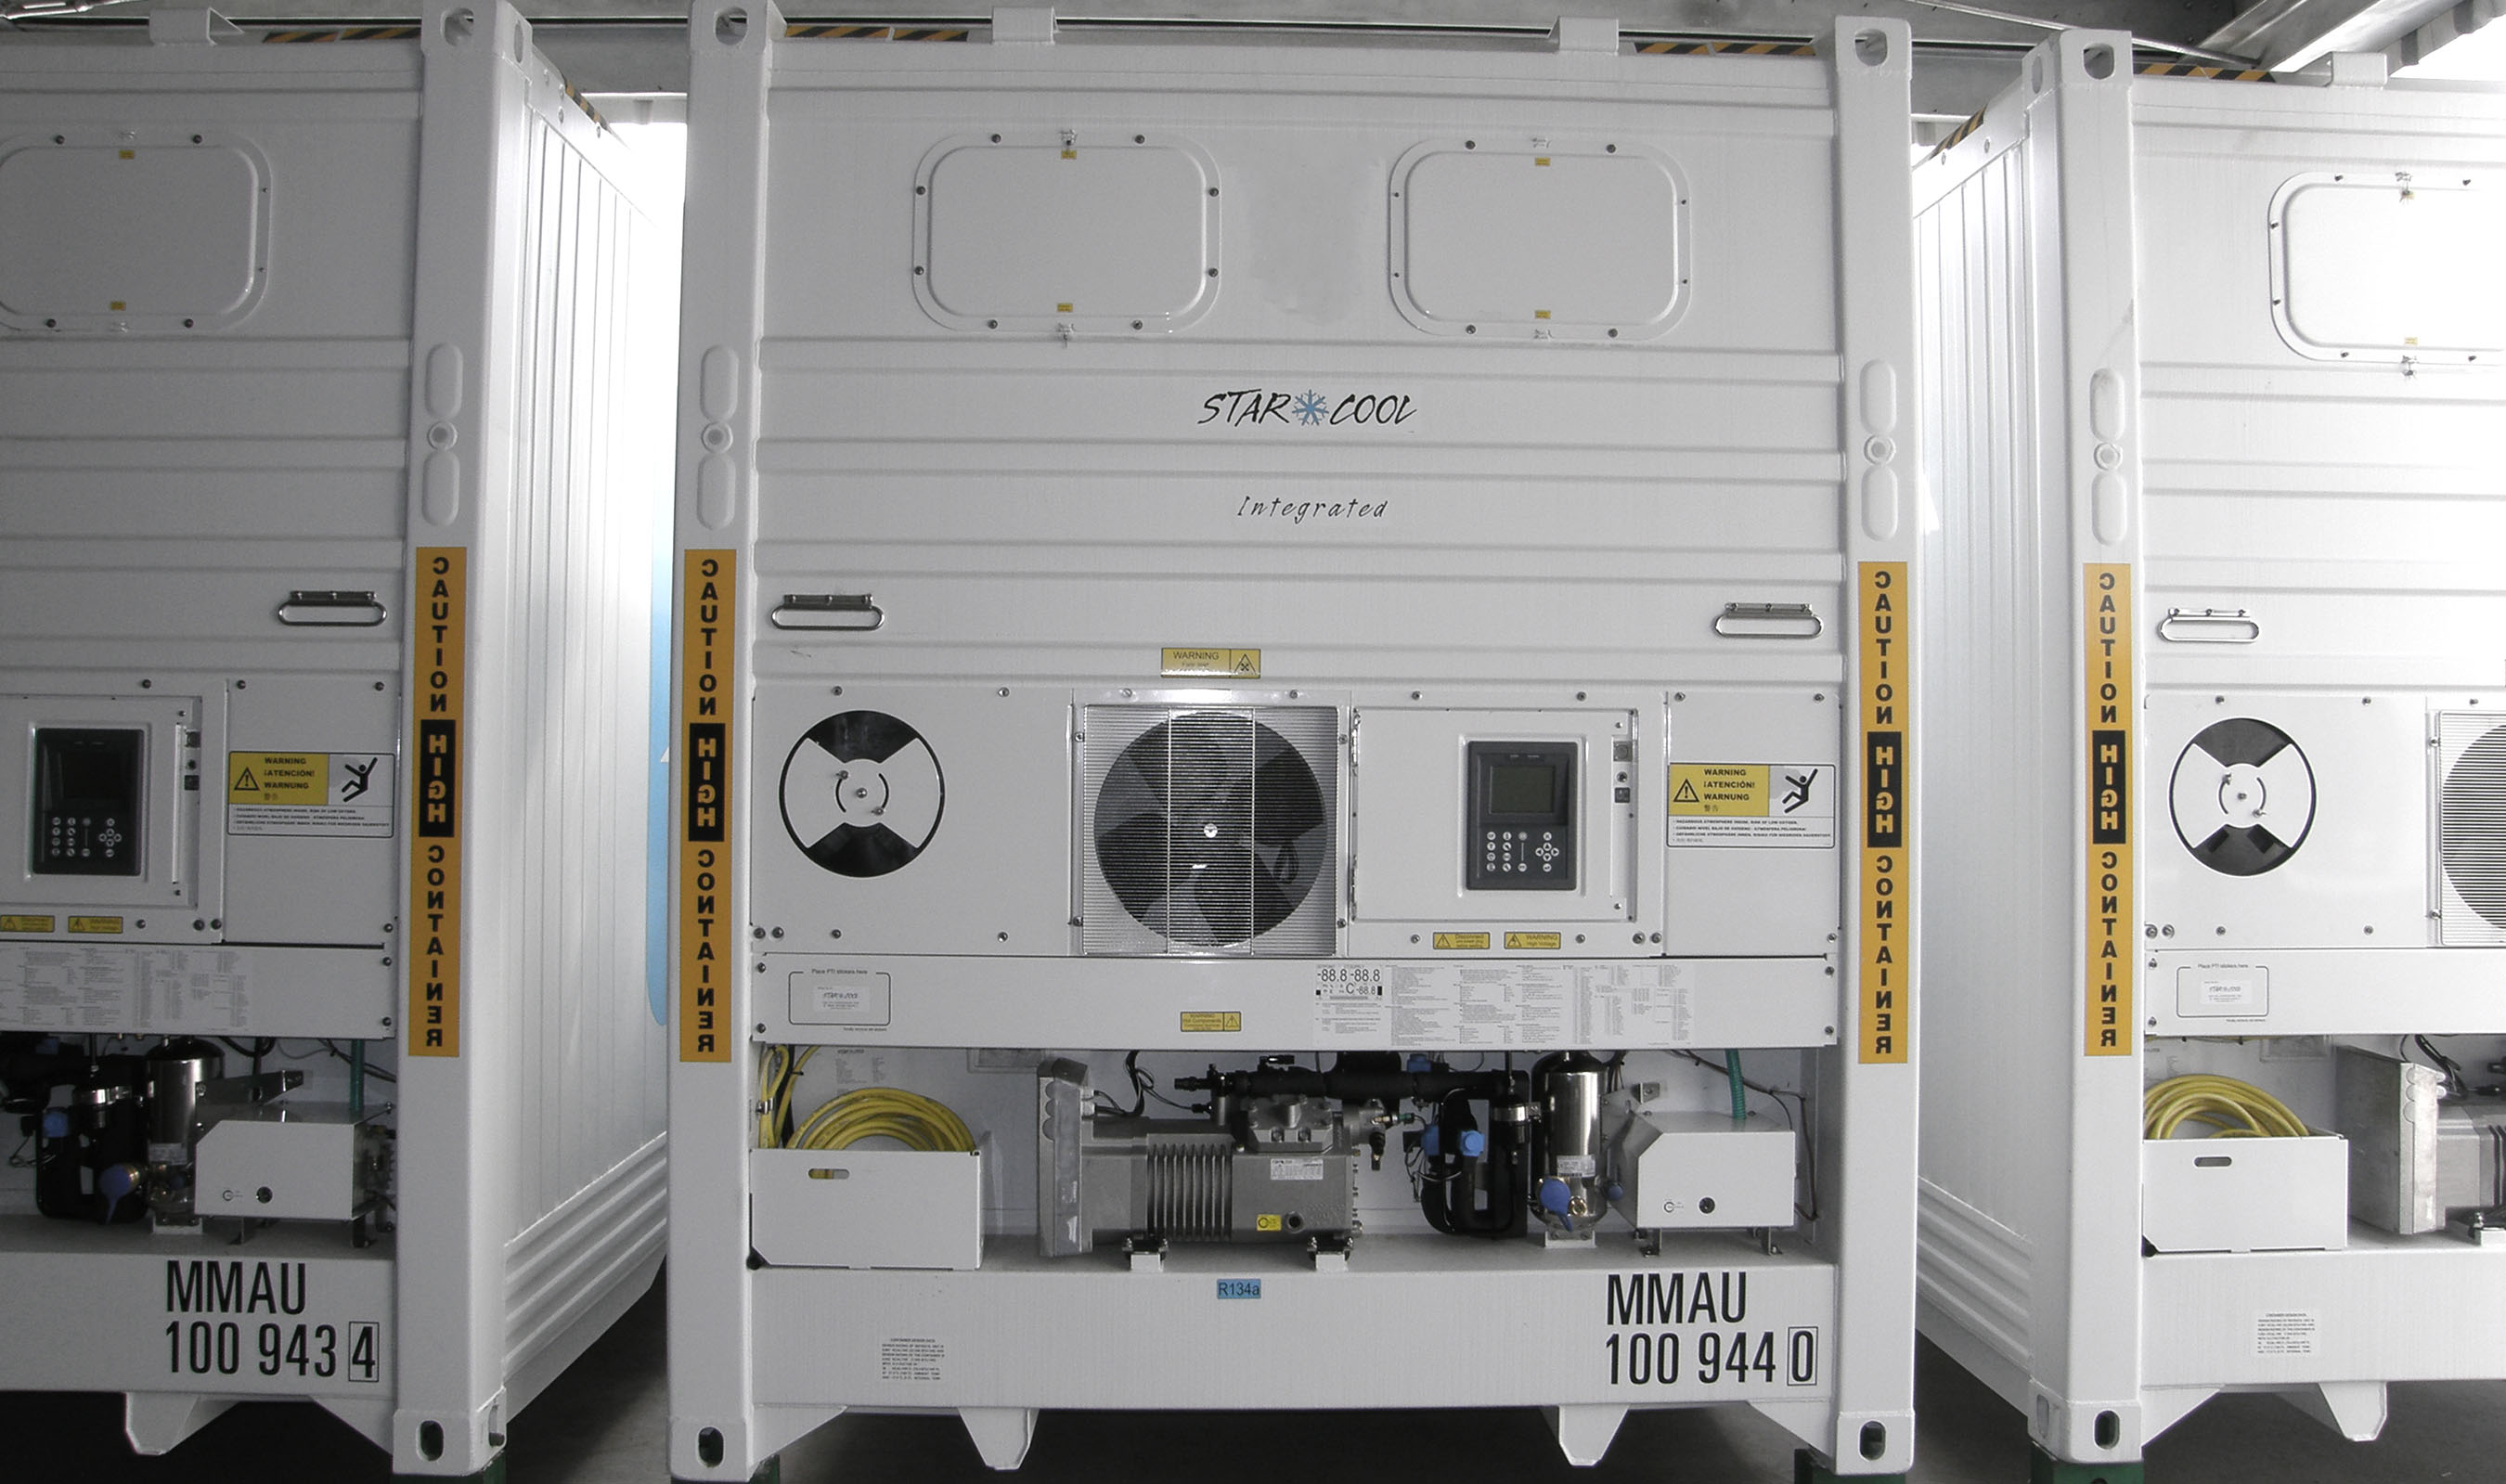 star cool reefer container manual